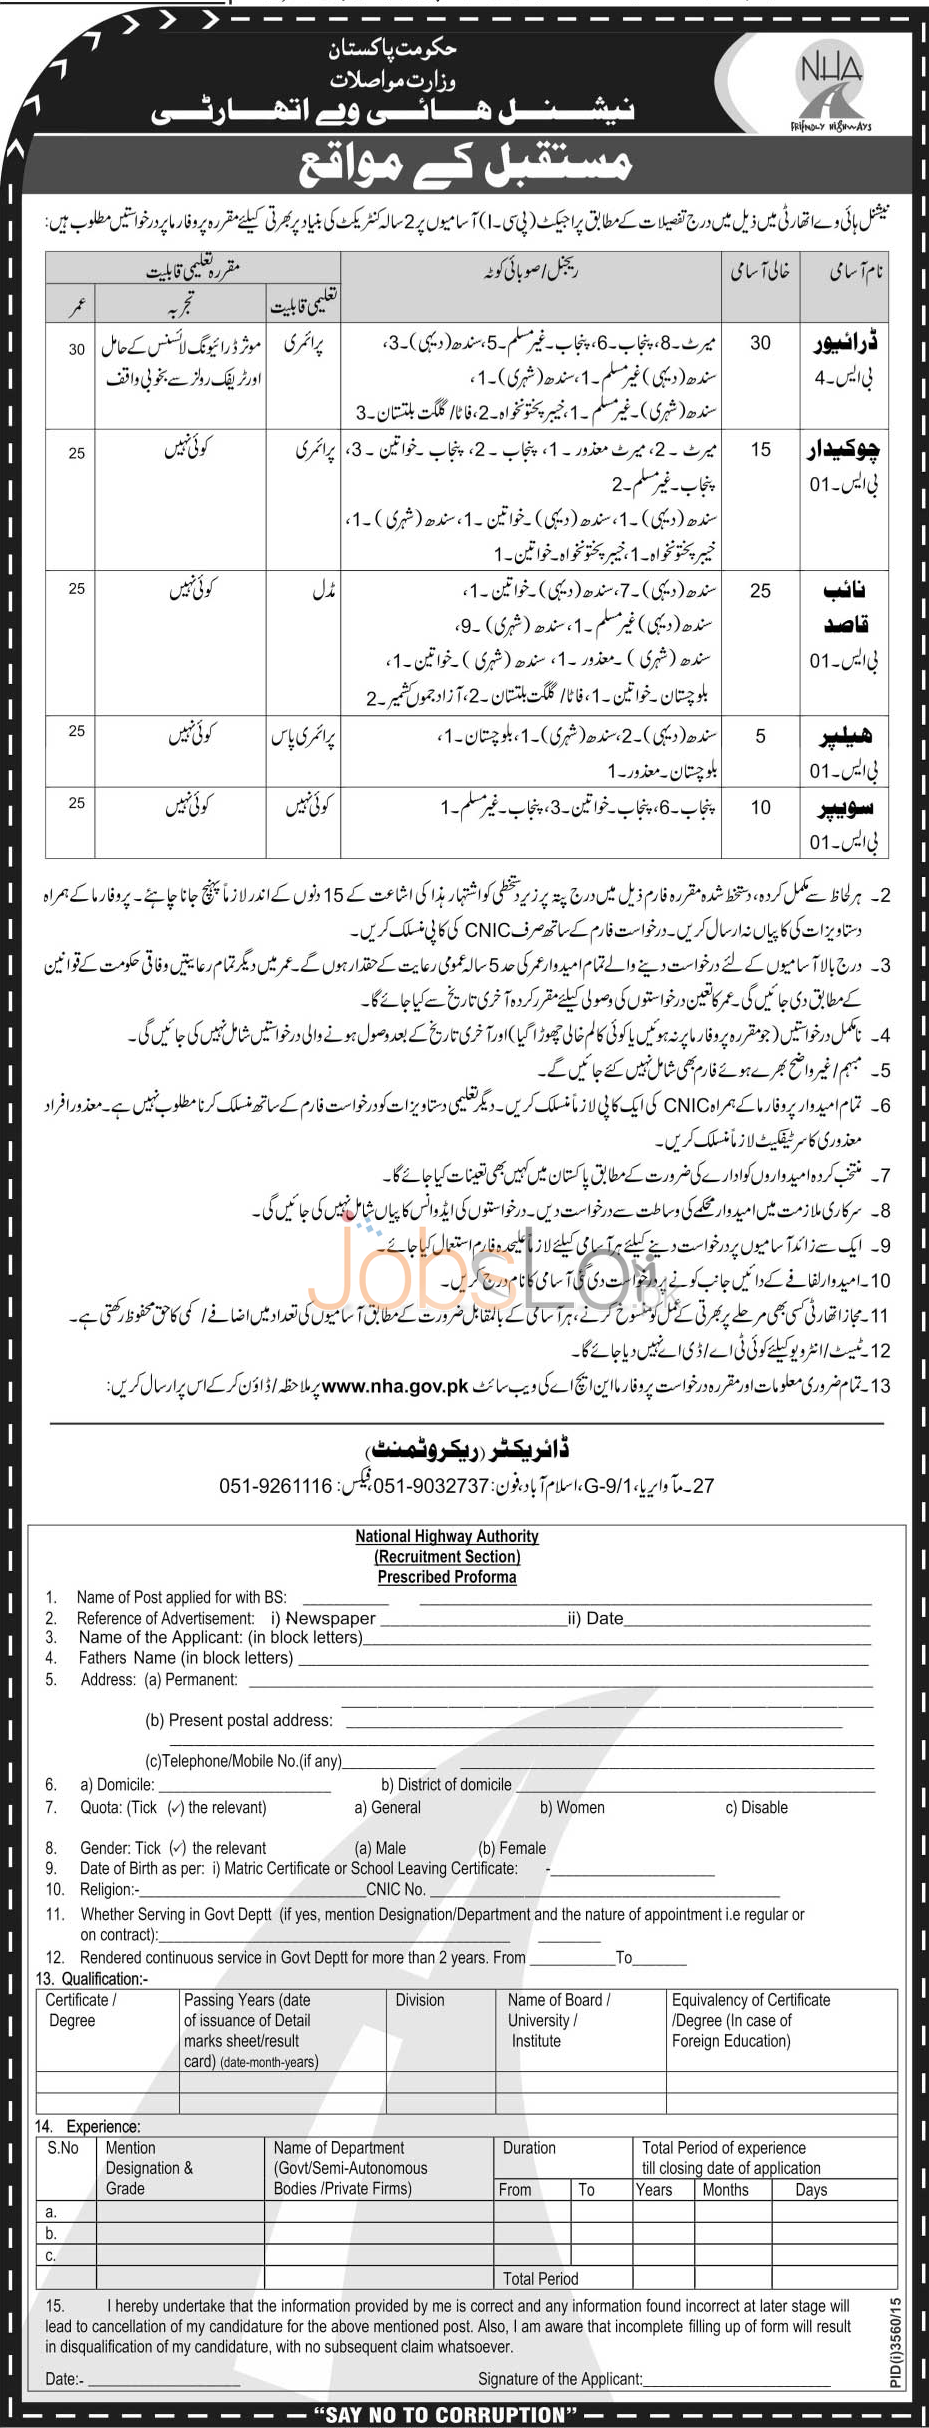 Recruitment Offers National Highway Authority Jobs 2016